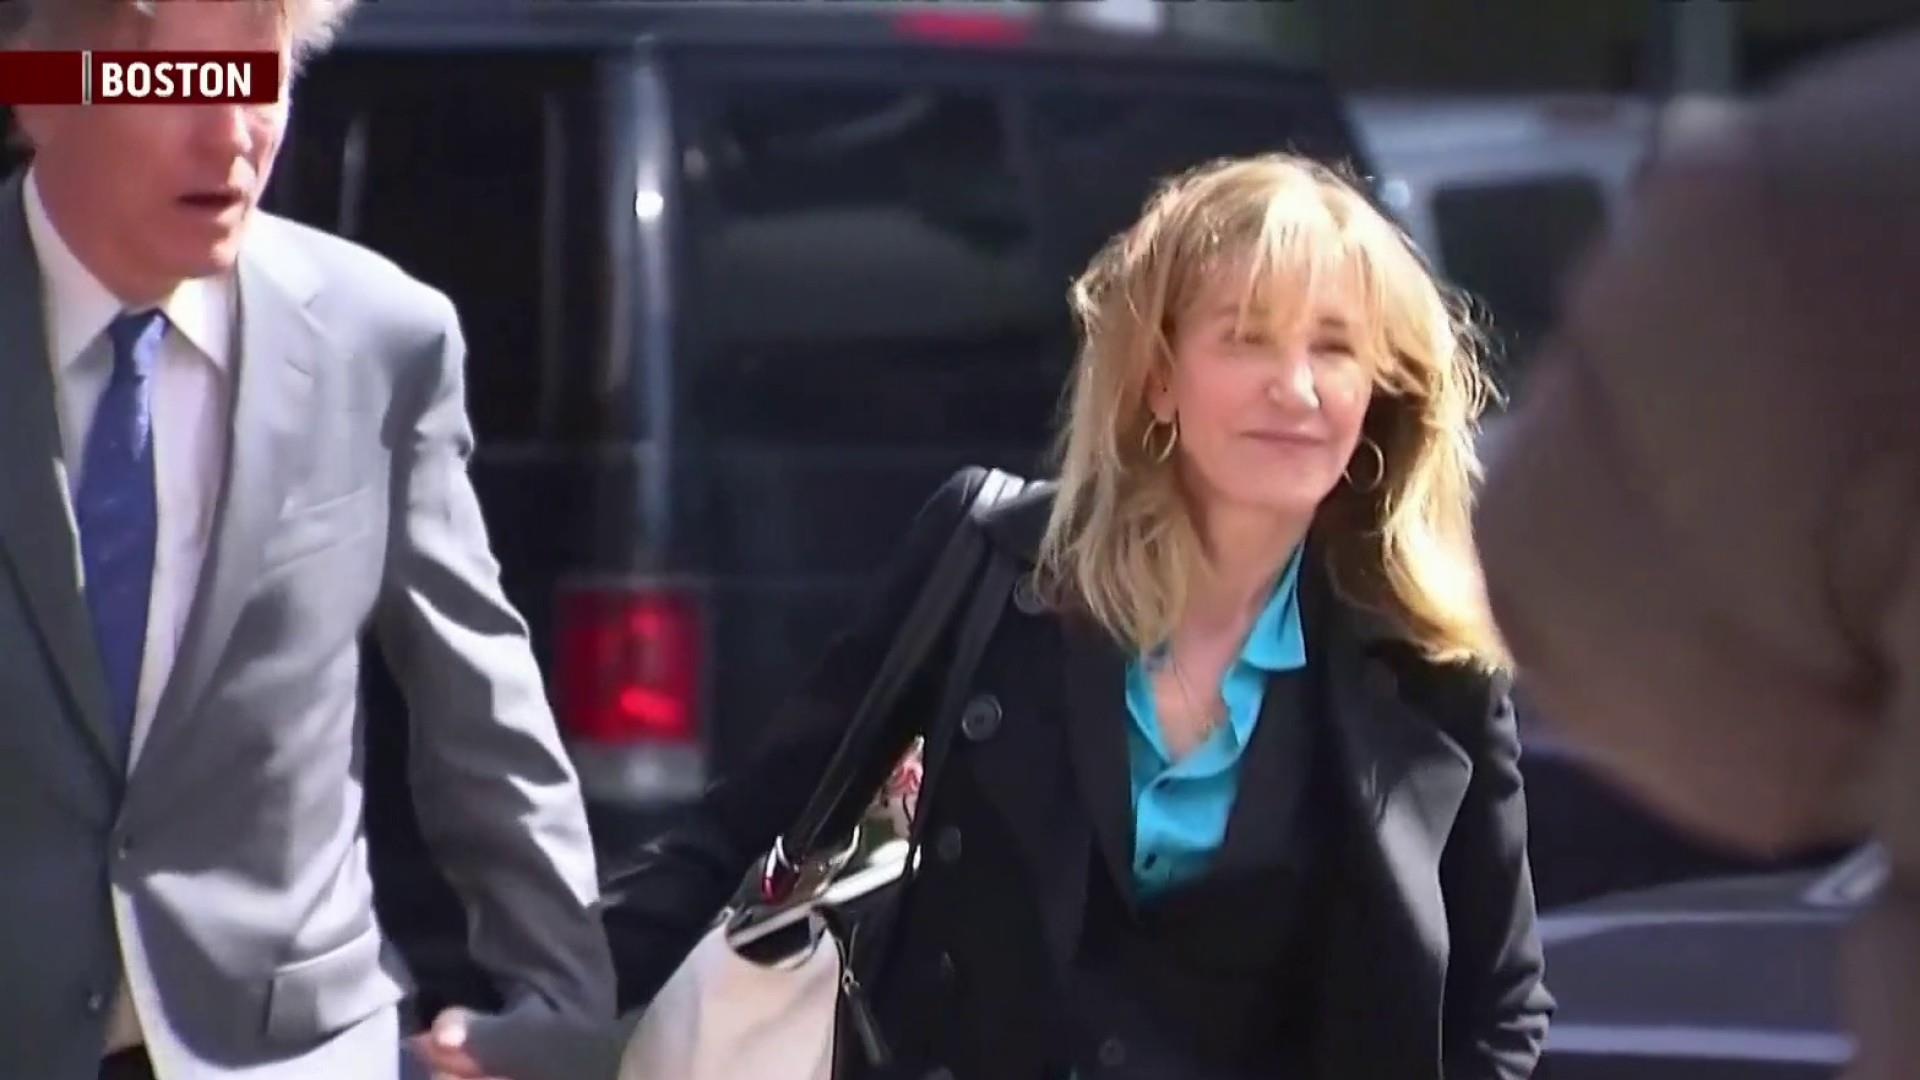 Actress Huffman among group pleading guilty in scandal